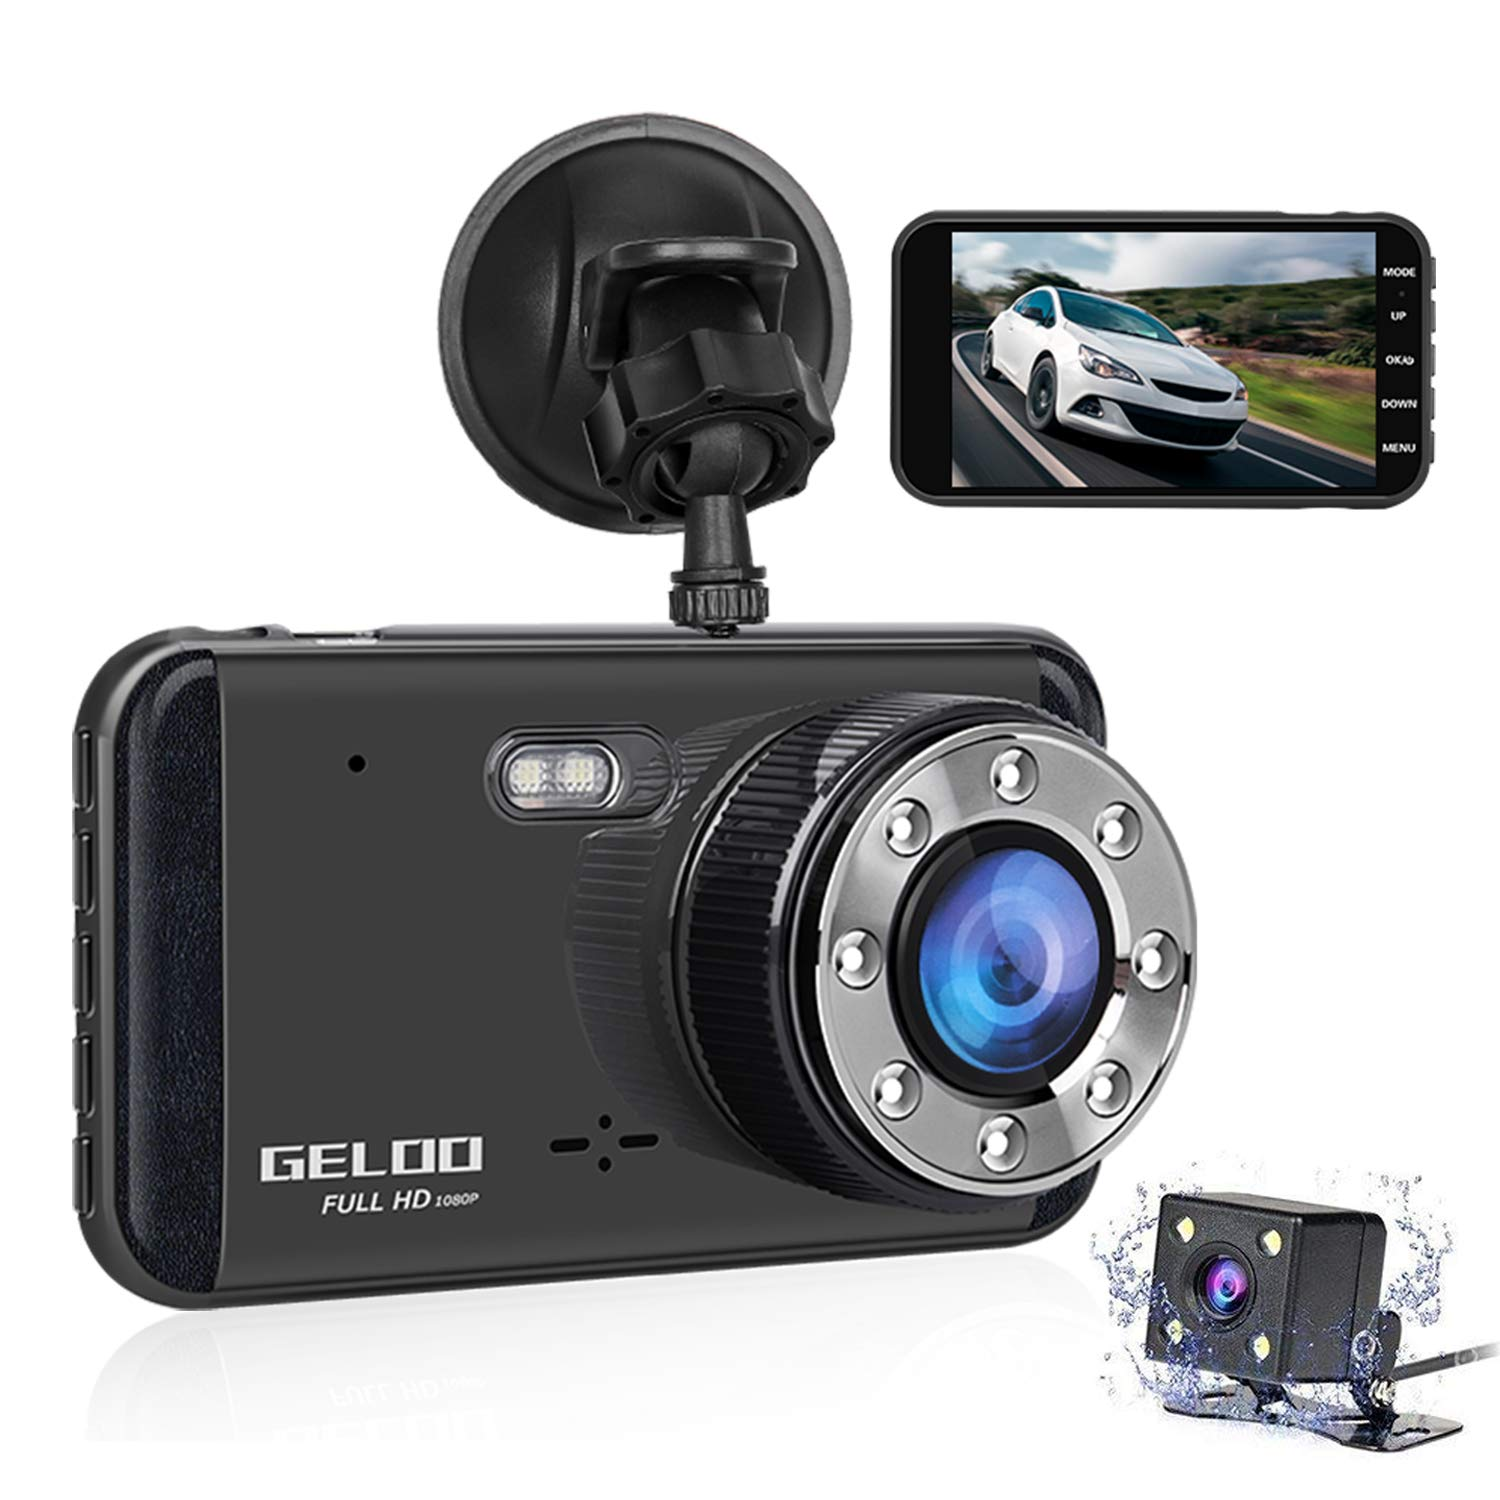 GELOO 4.0 inch Dual Lens Car Dash Cam Full HD 1080P Dashboard Camera 170 Degree Wide Angle Car Camera Recorder with WDR Enhance Night Vision, G-Sensor, Parking Mode, Motion Detection, Loop Recording